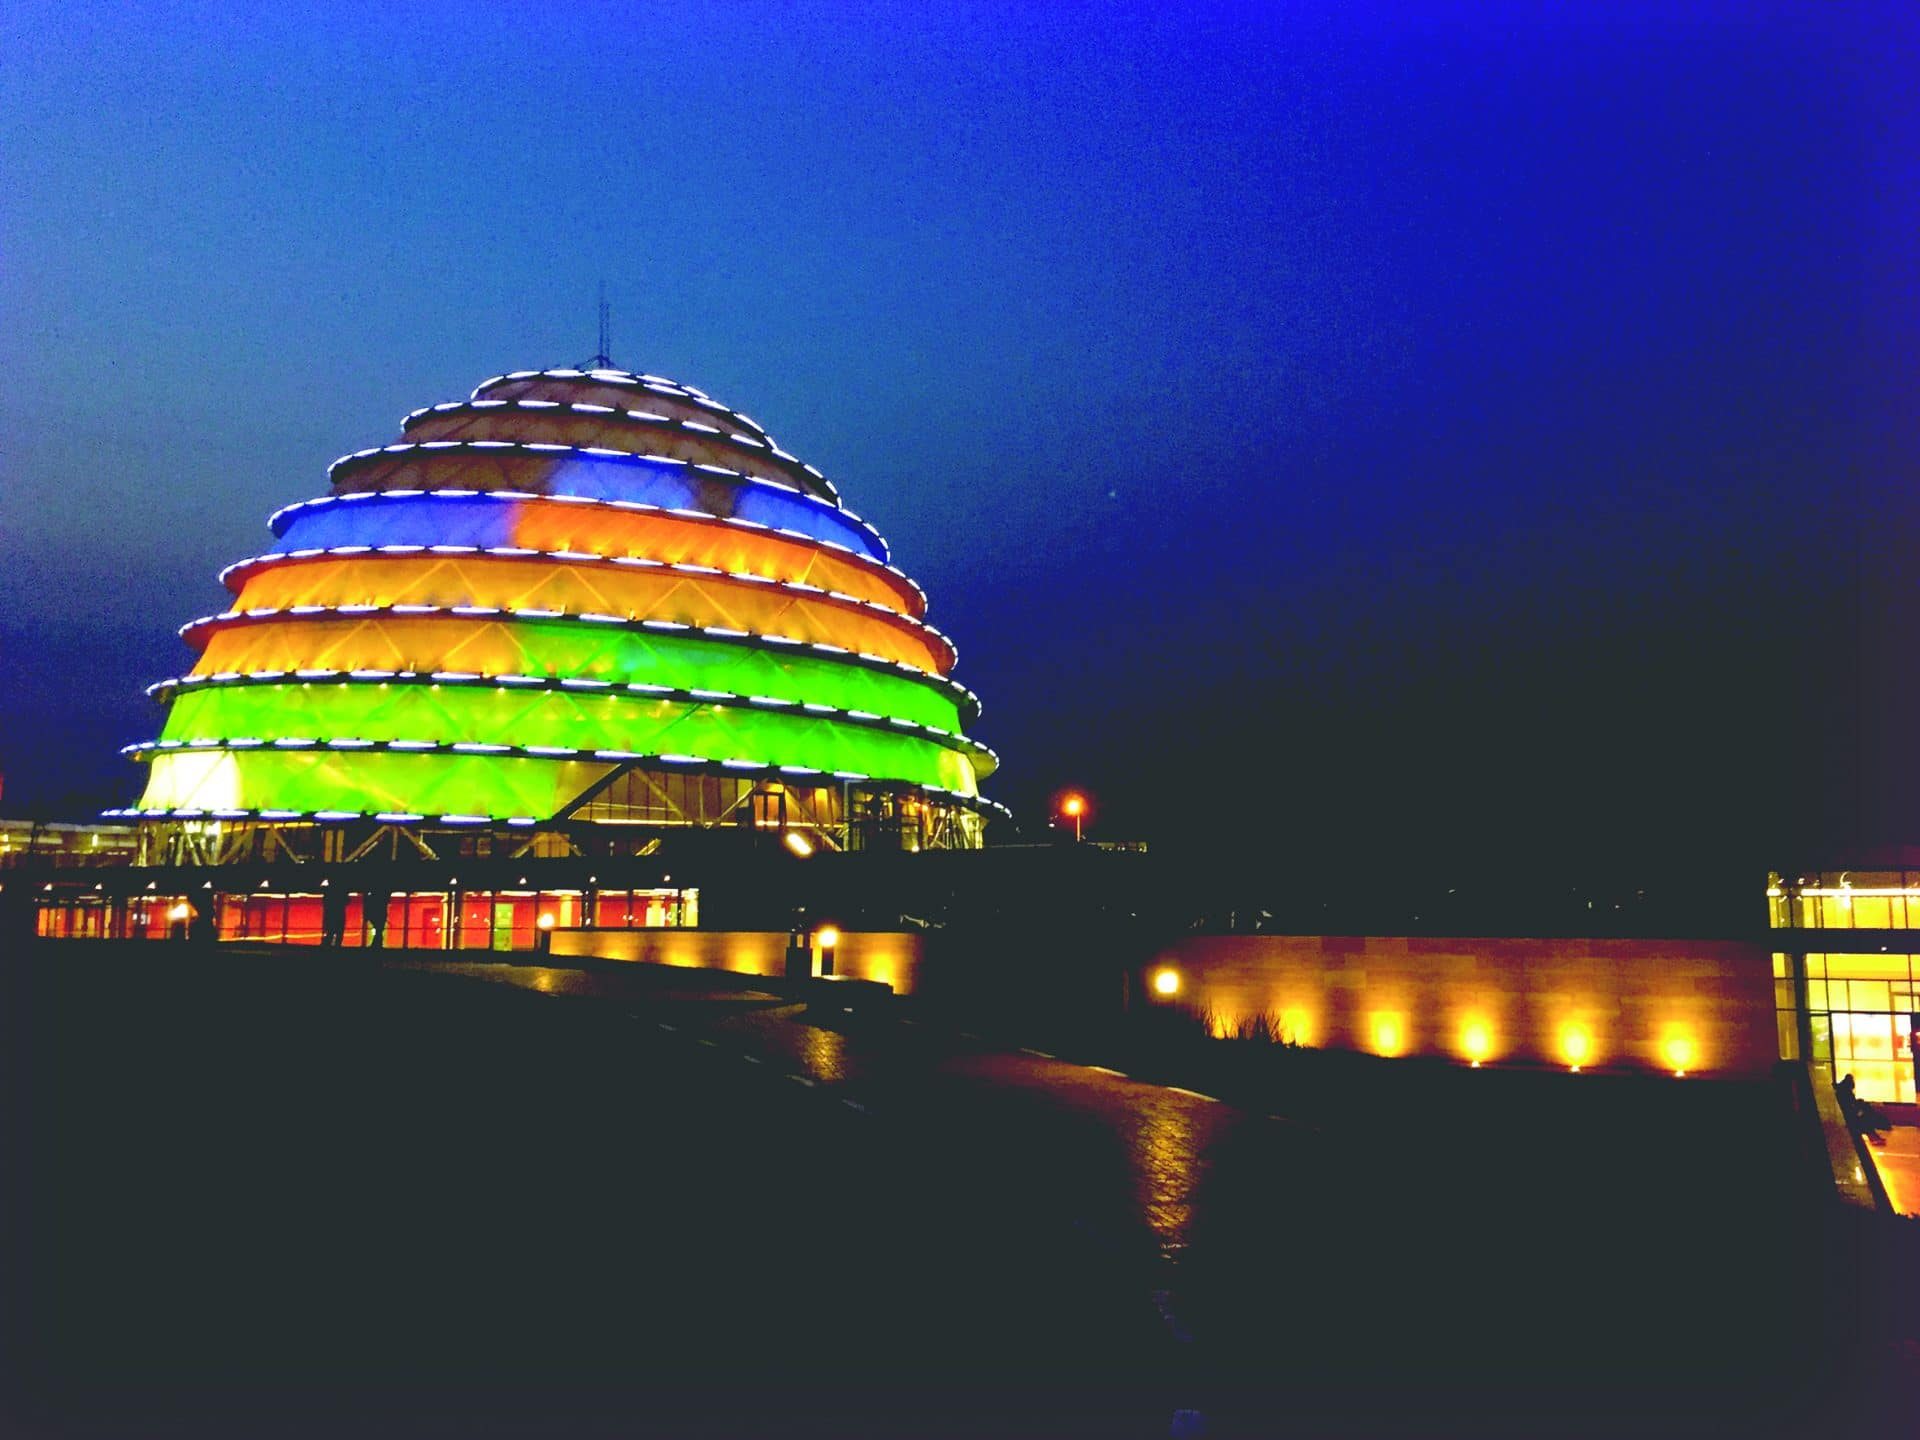 The-Kigali-Convention-Centres-design-is-inspired-by-traditional-Rwandan-baskets